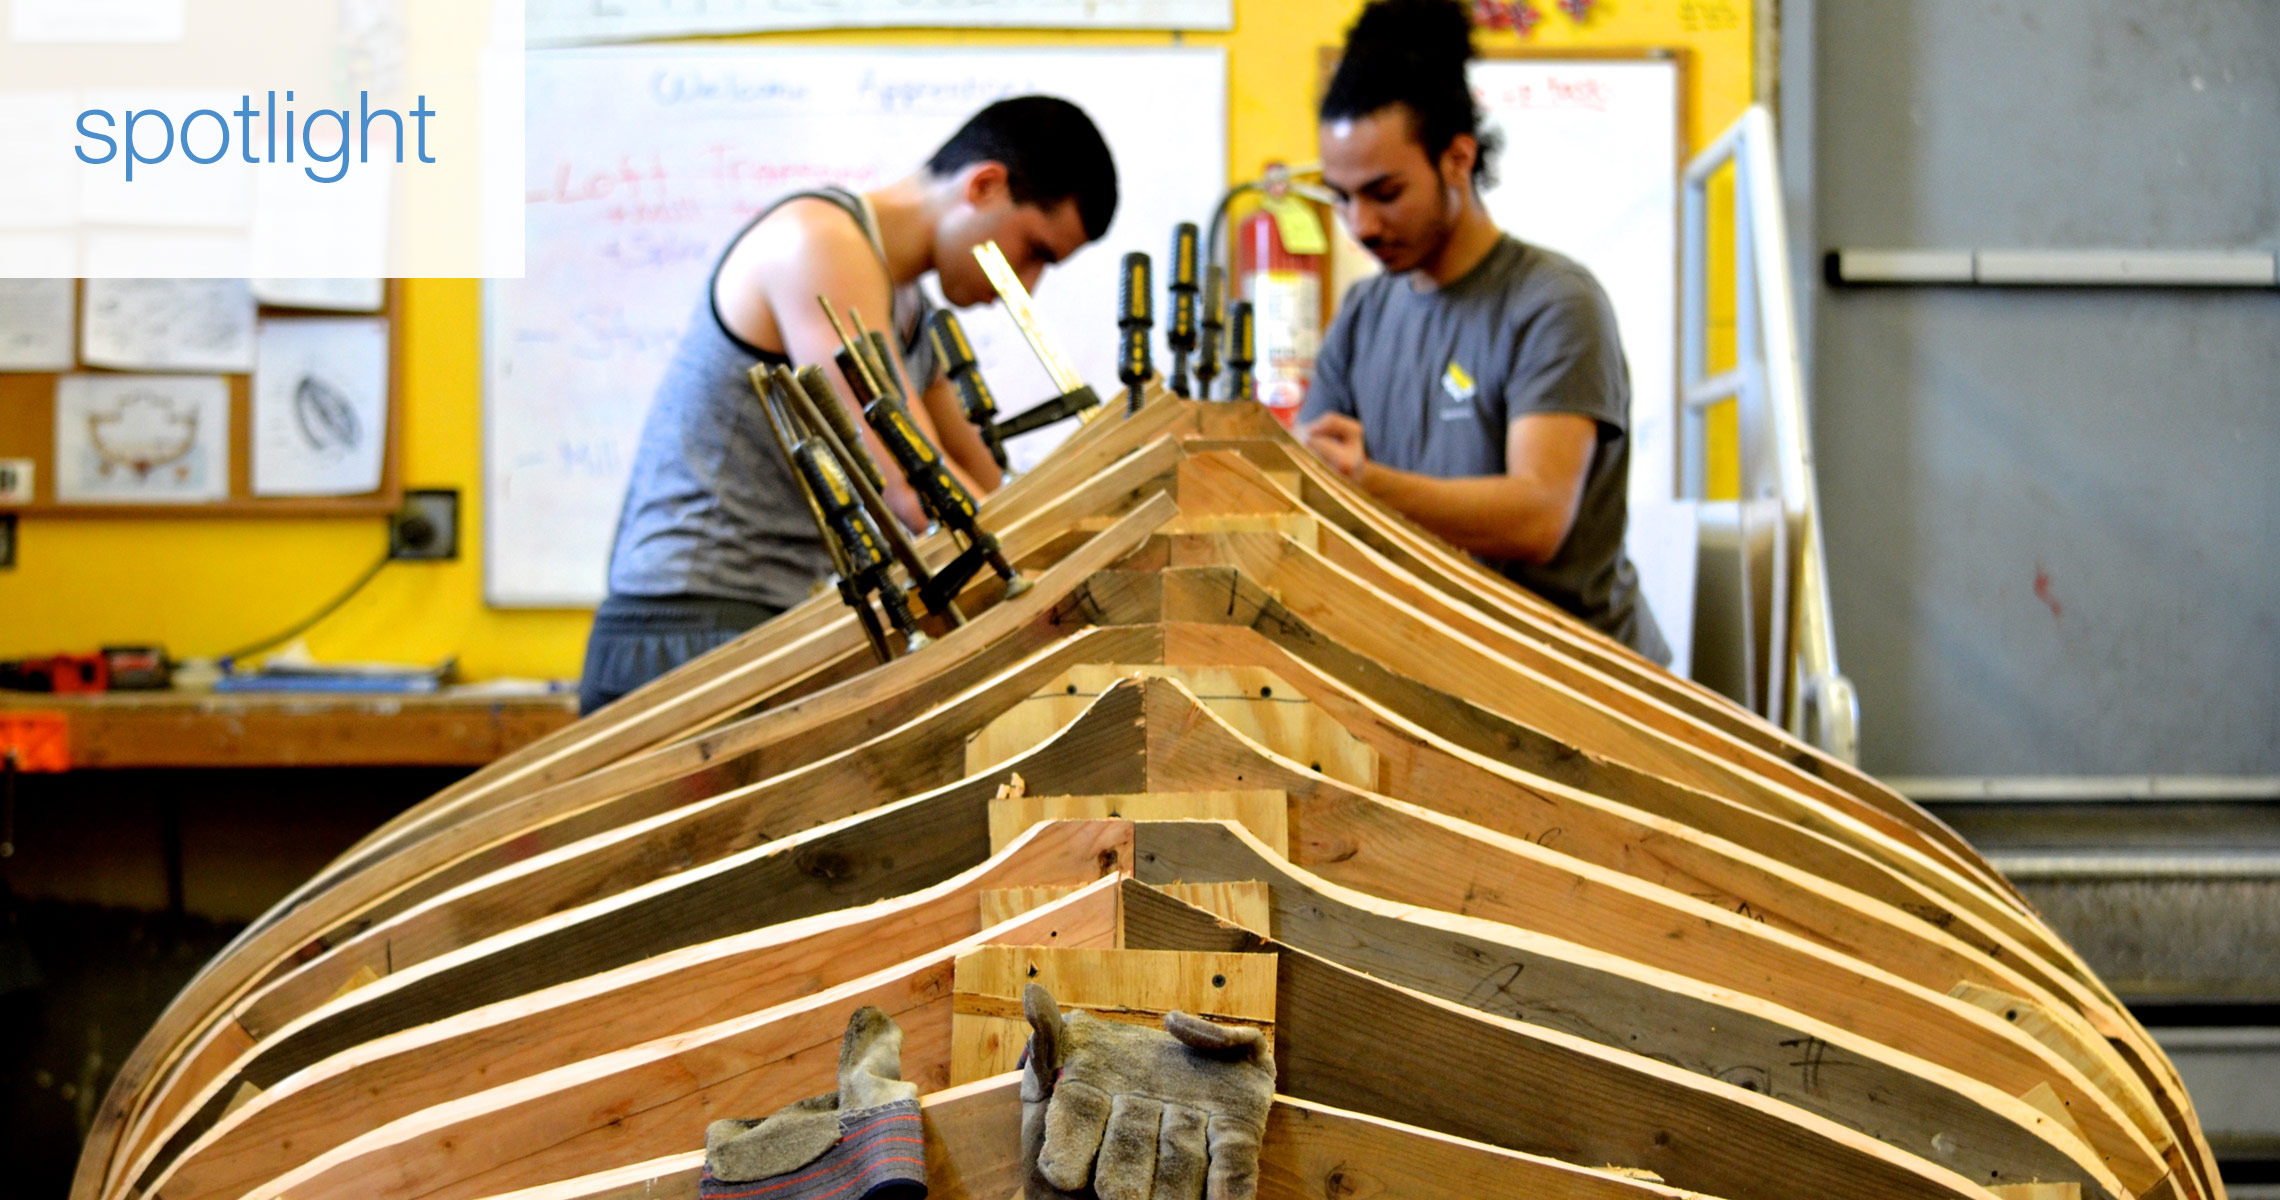 spotlight on boatbuilding